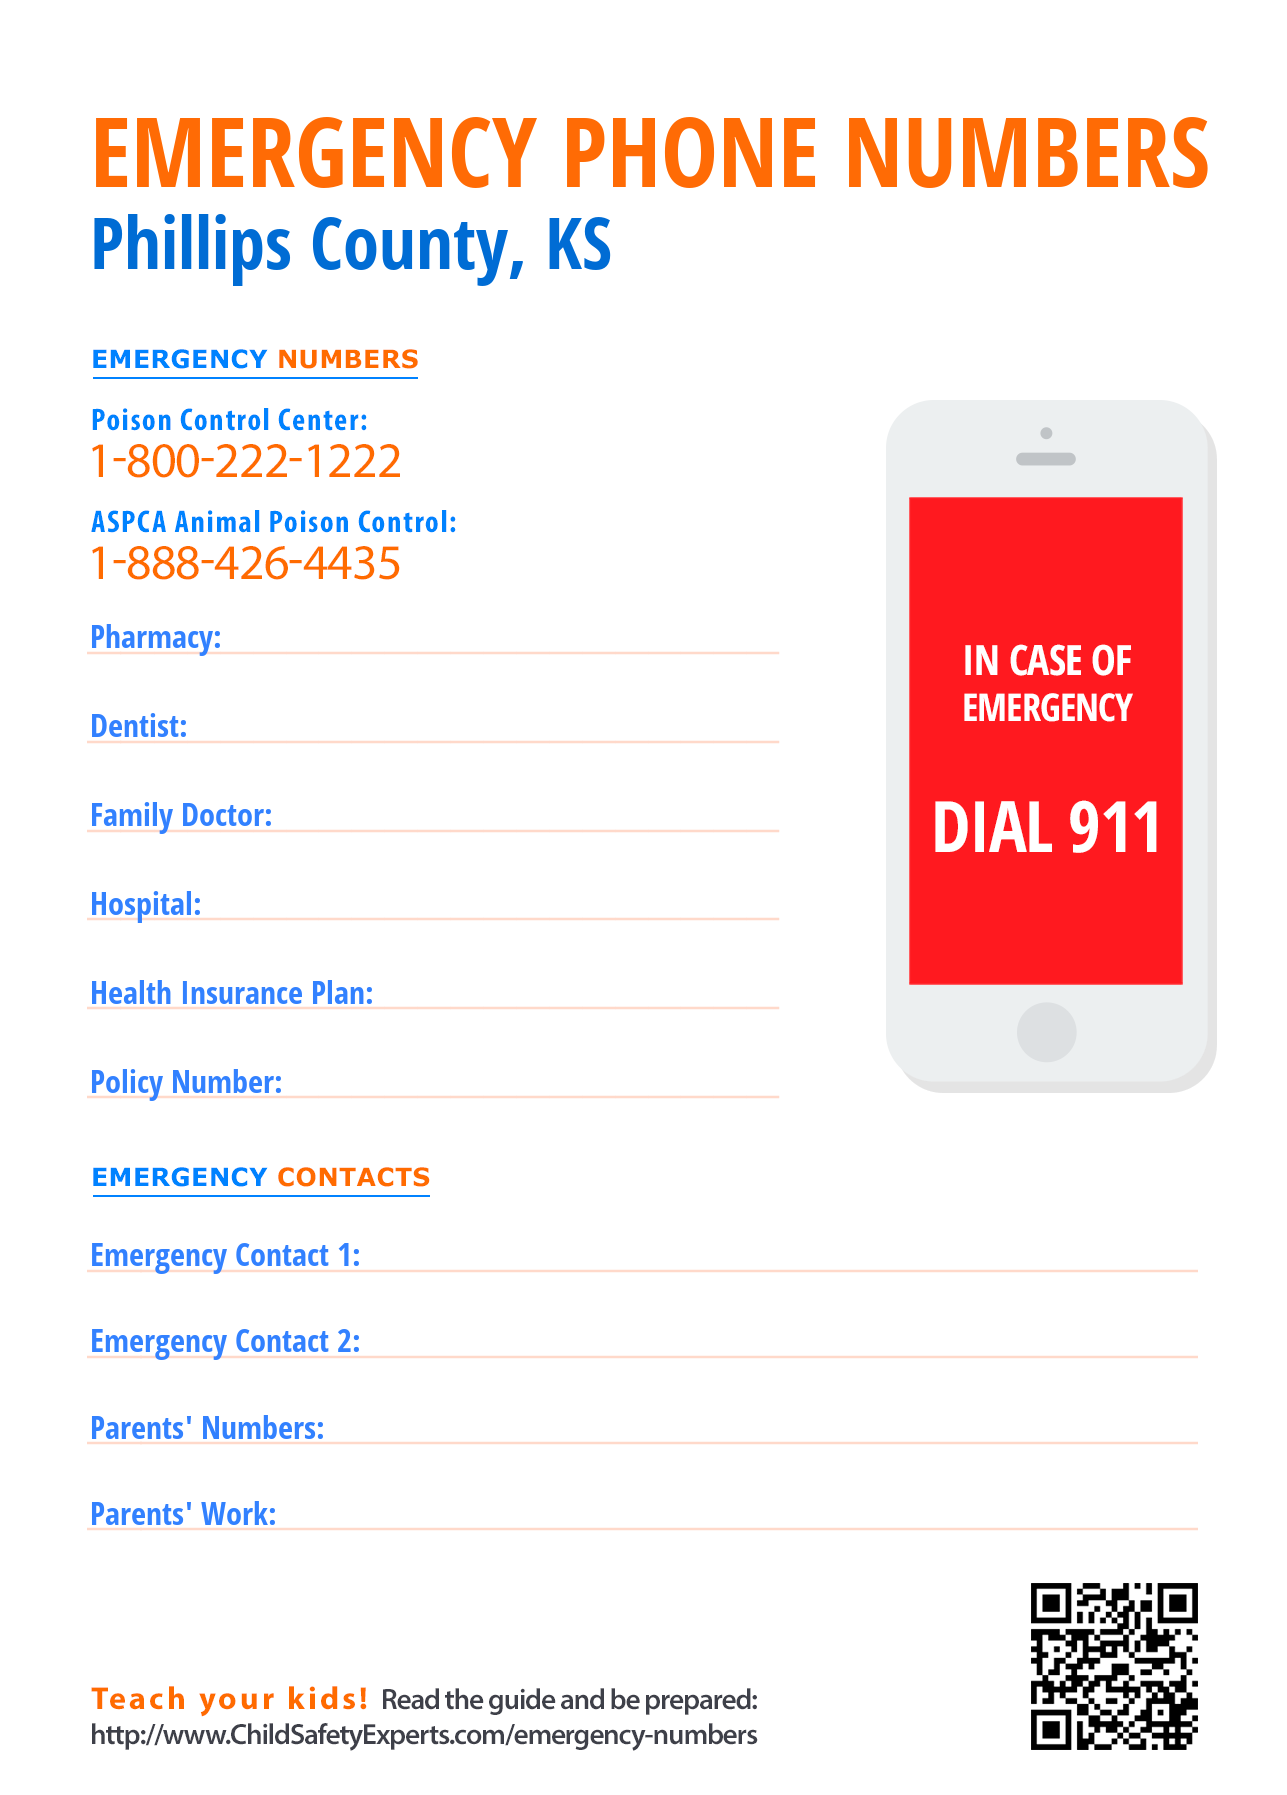 Important emergency phone numbers in Phillips County, Kansas